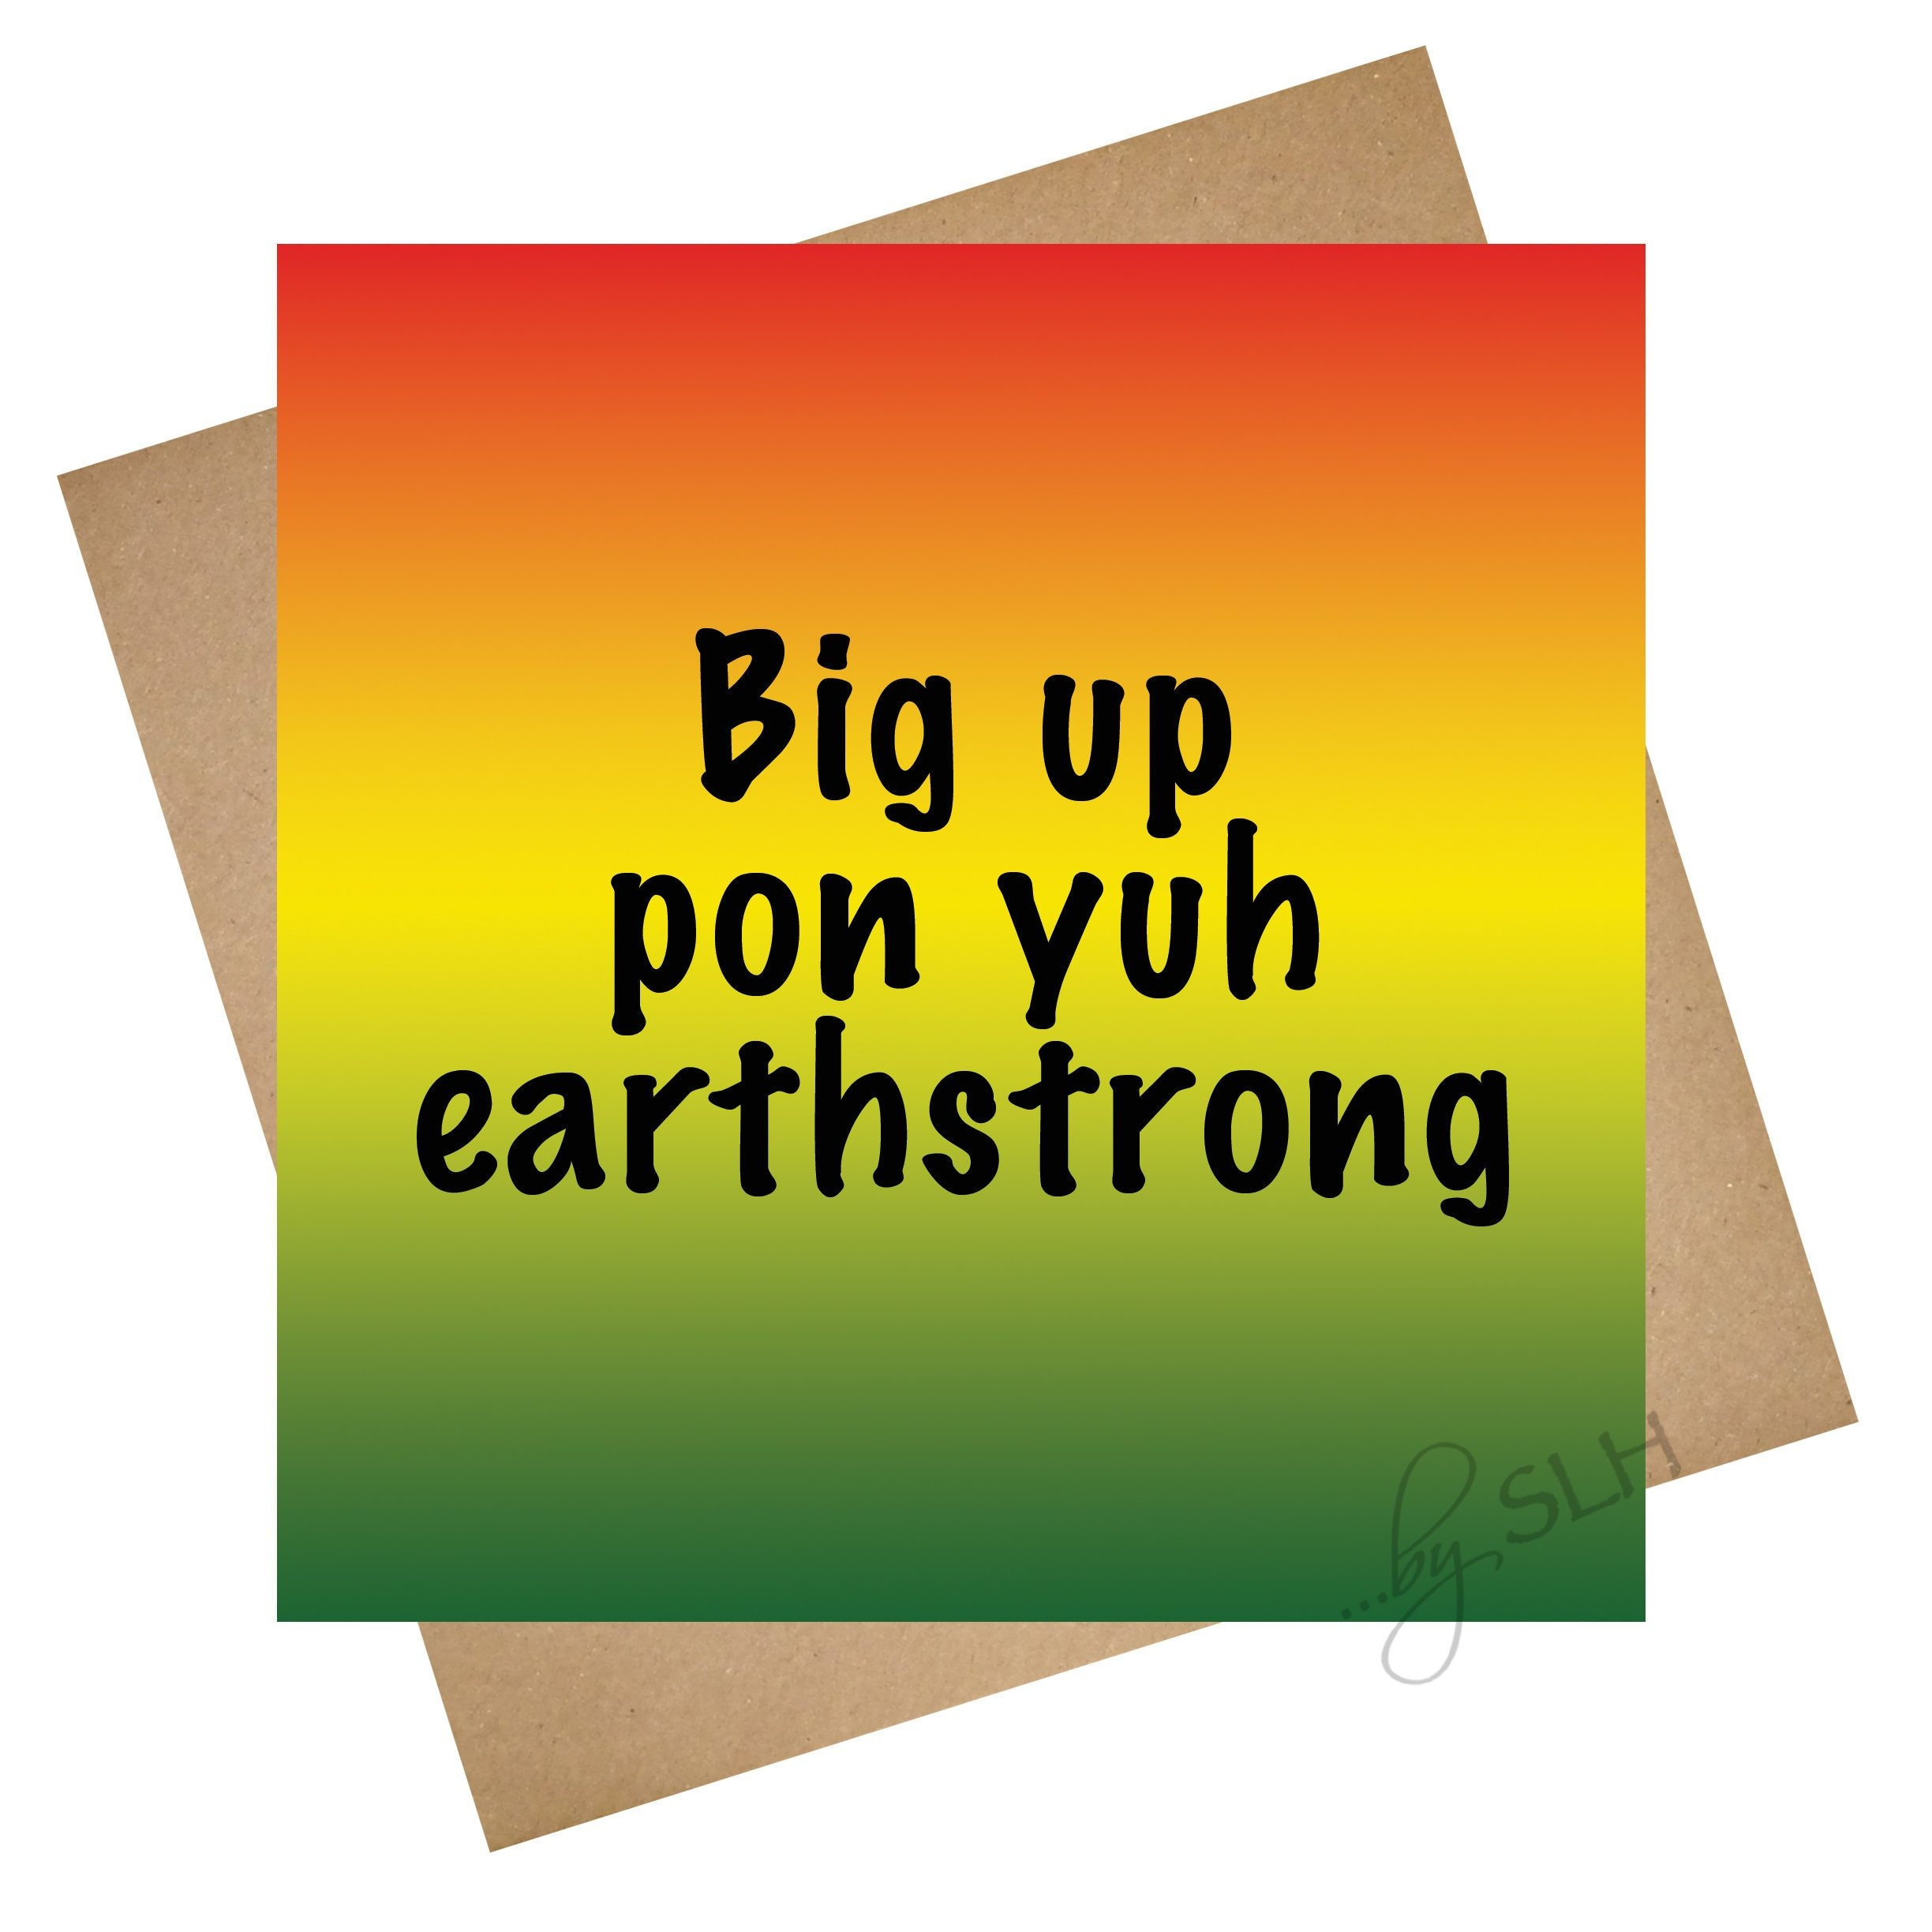 Greetings Card Big Up Earthstrong Unique Jamaican Etsy